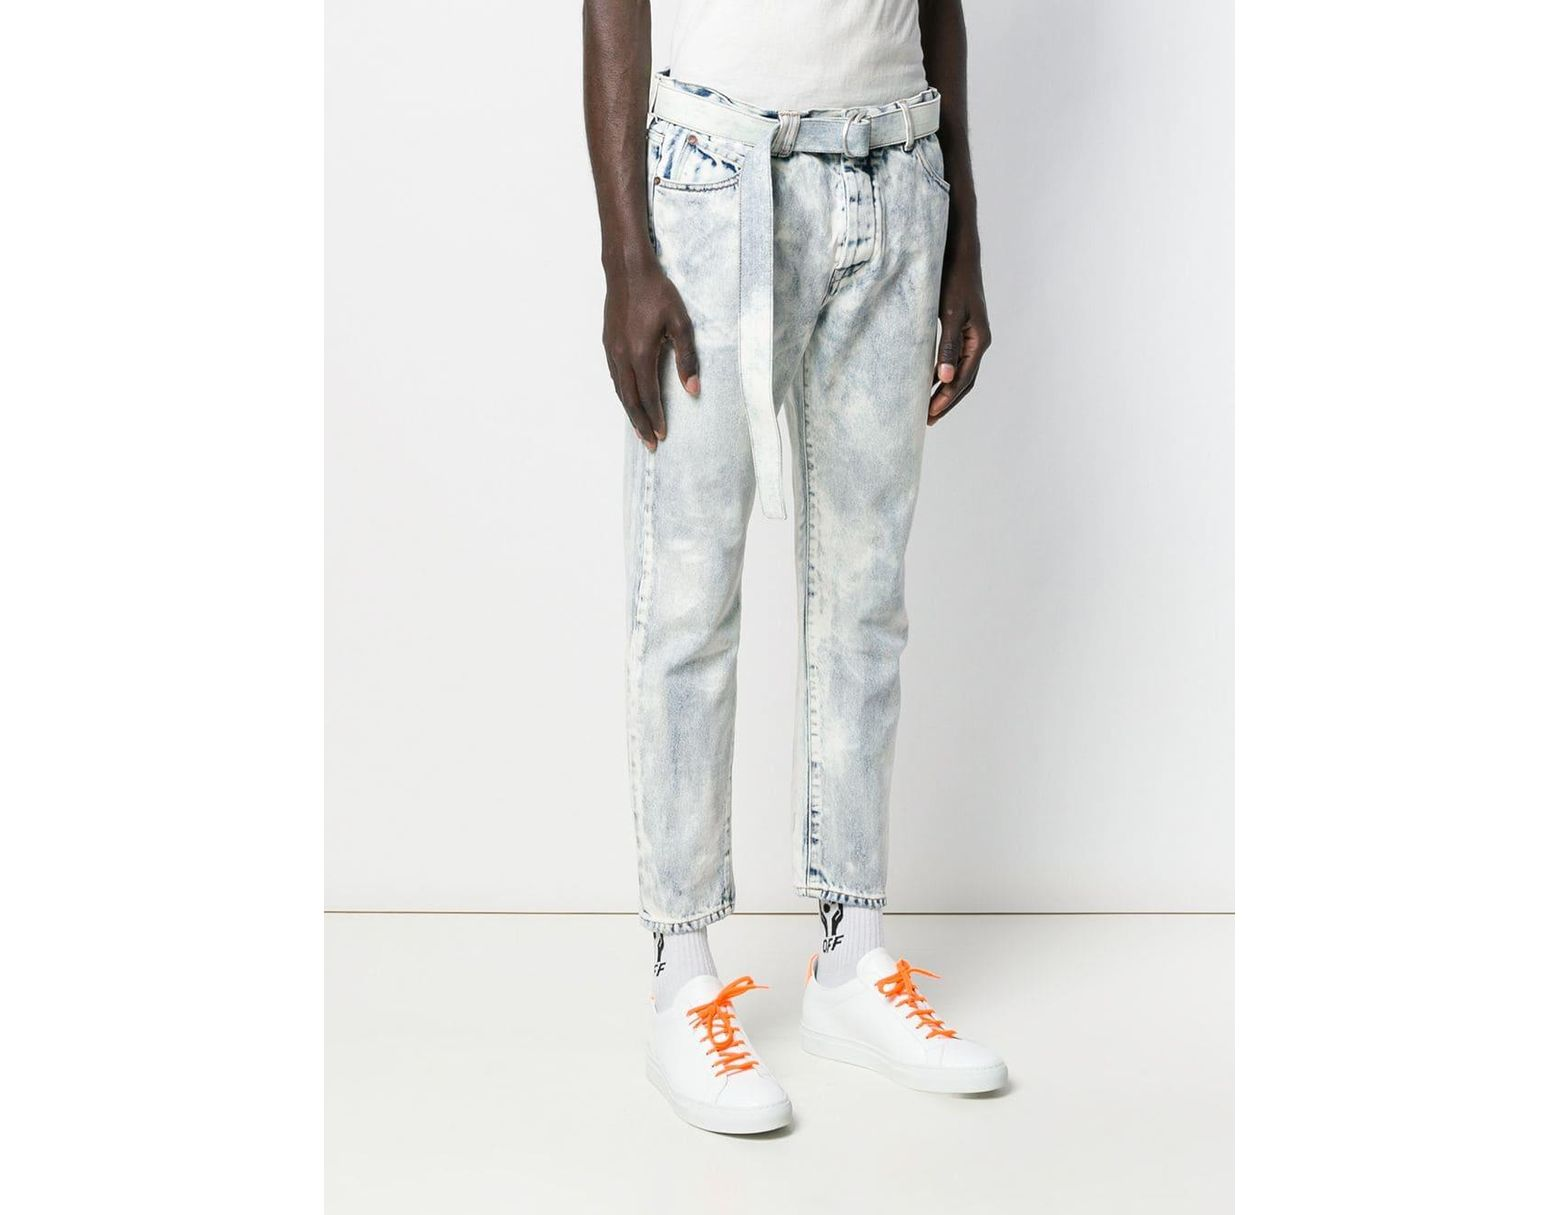 29cc9a89 Off-White c/o Virgil Abloh Slim-fit Drop-crotch Jeans in Blue for Men - Lyst